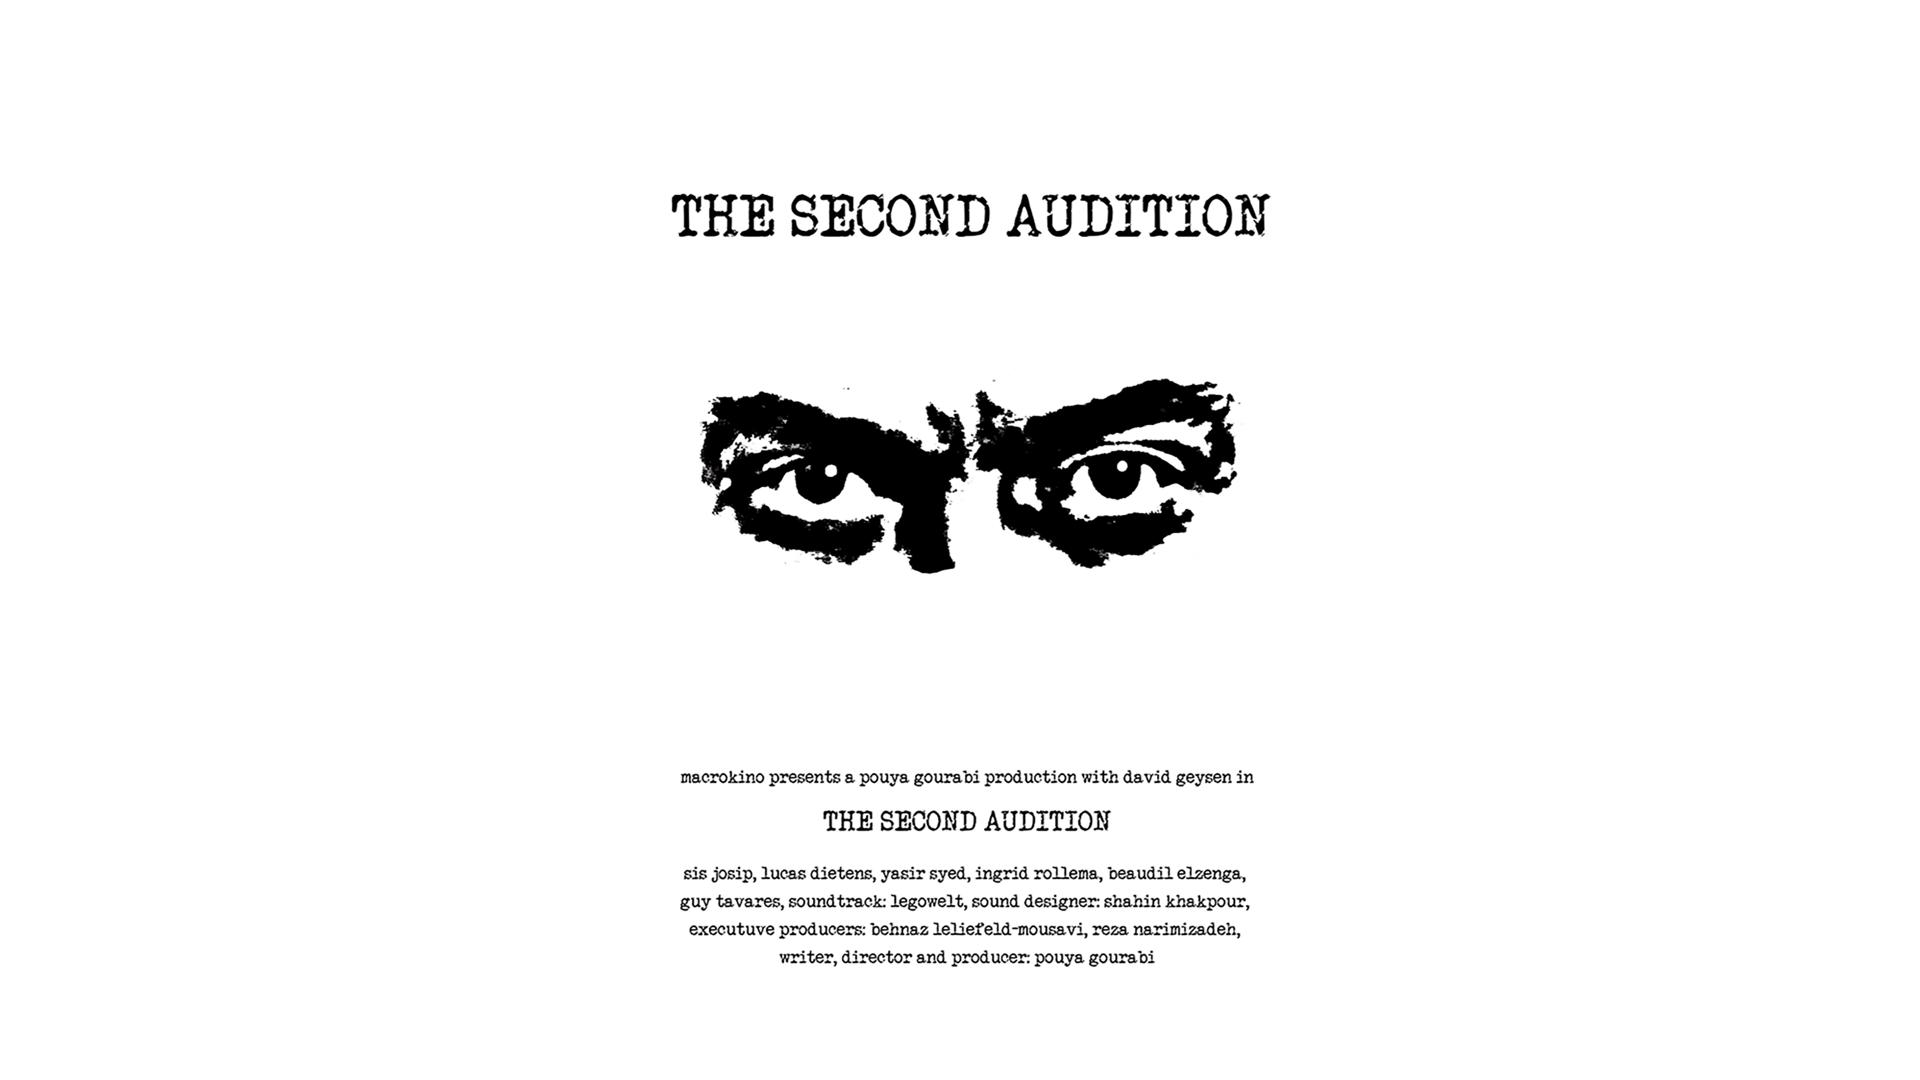 THE SECOND AUDITION